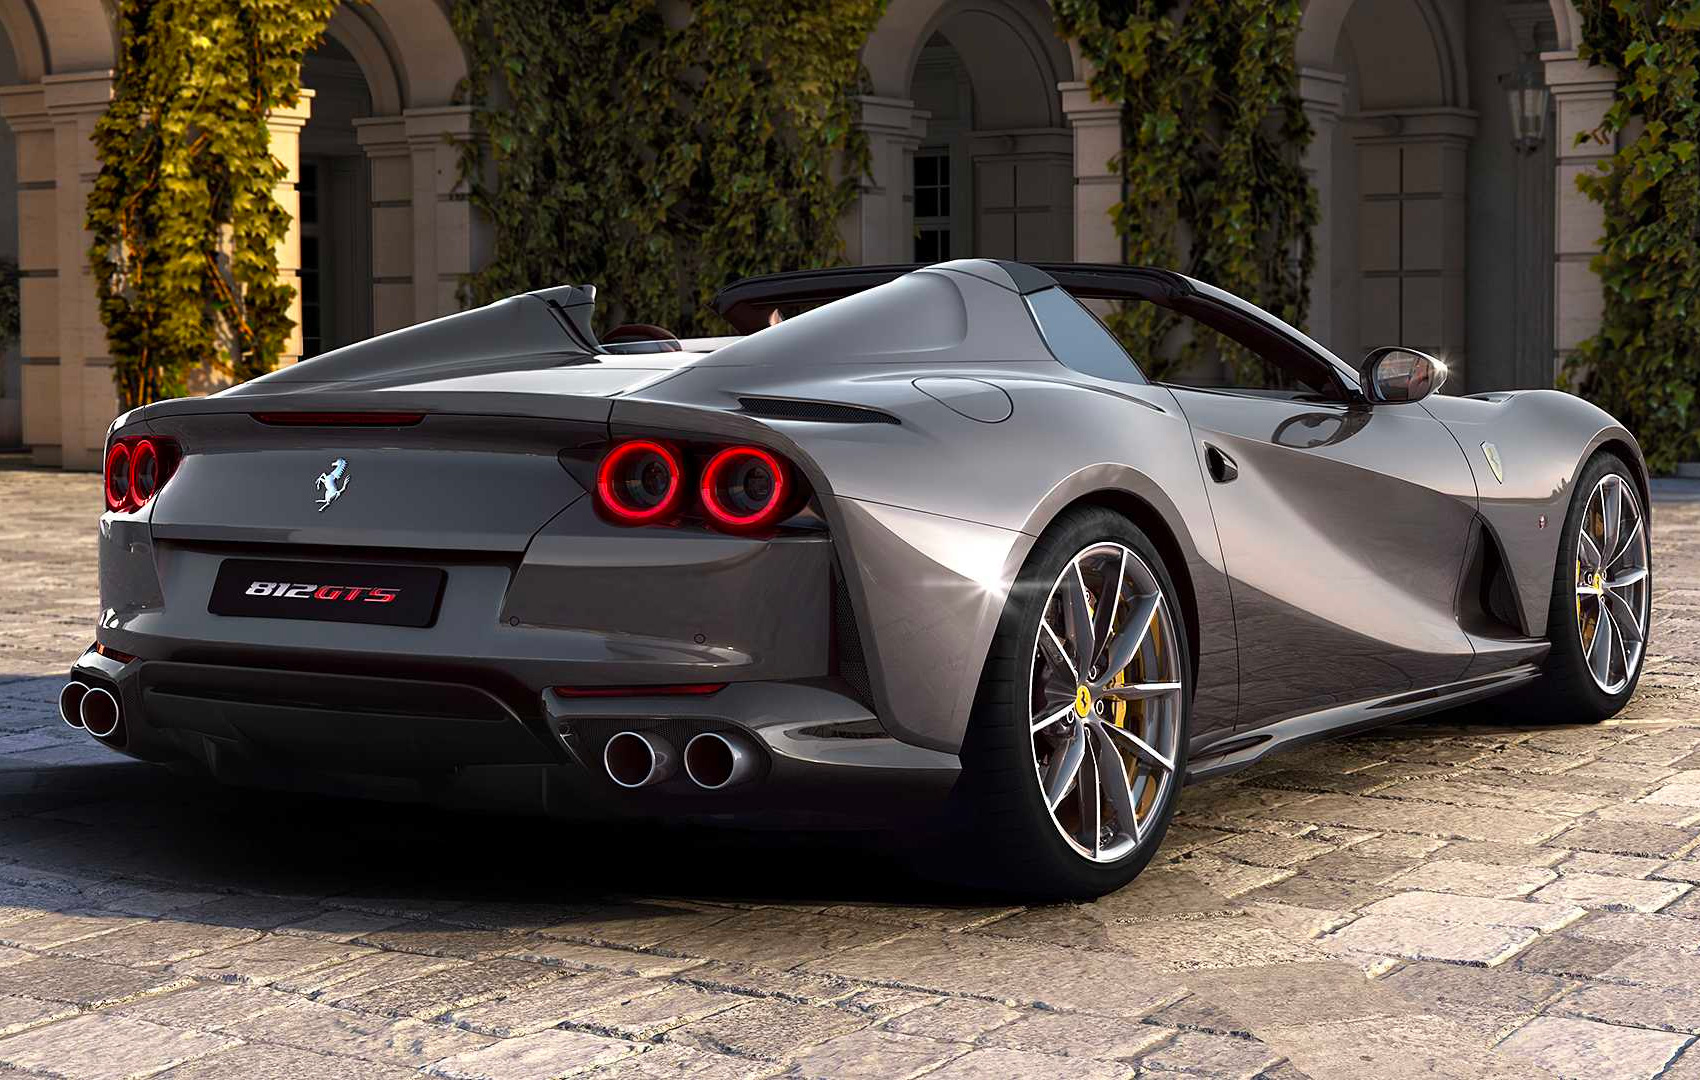 Ferrari Rolls Out a Superfast Convertible: the 812 GTS at werd.com